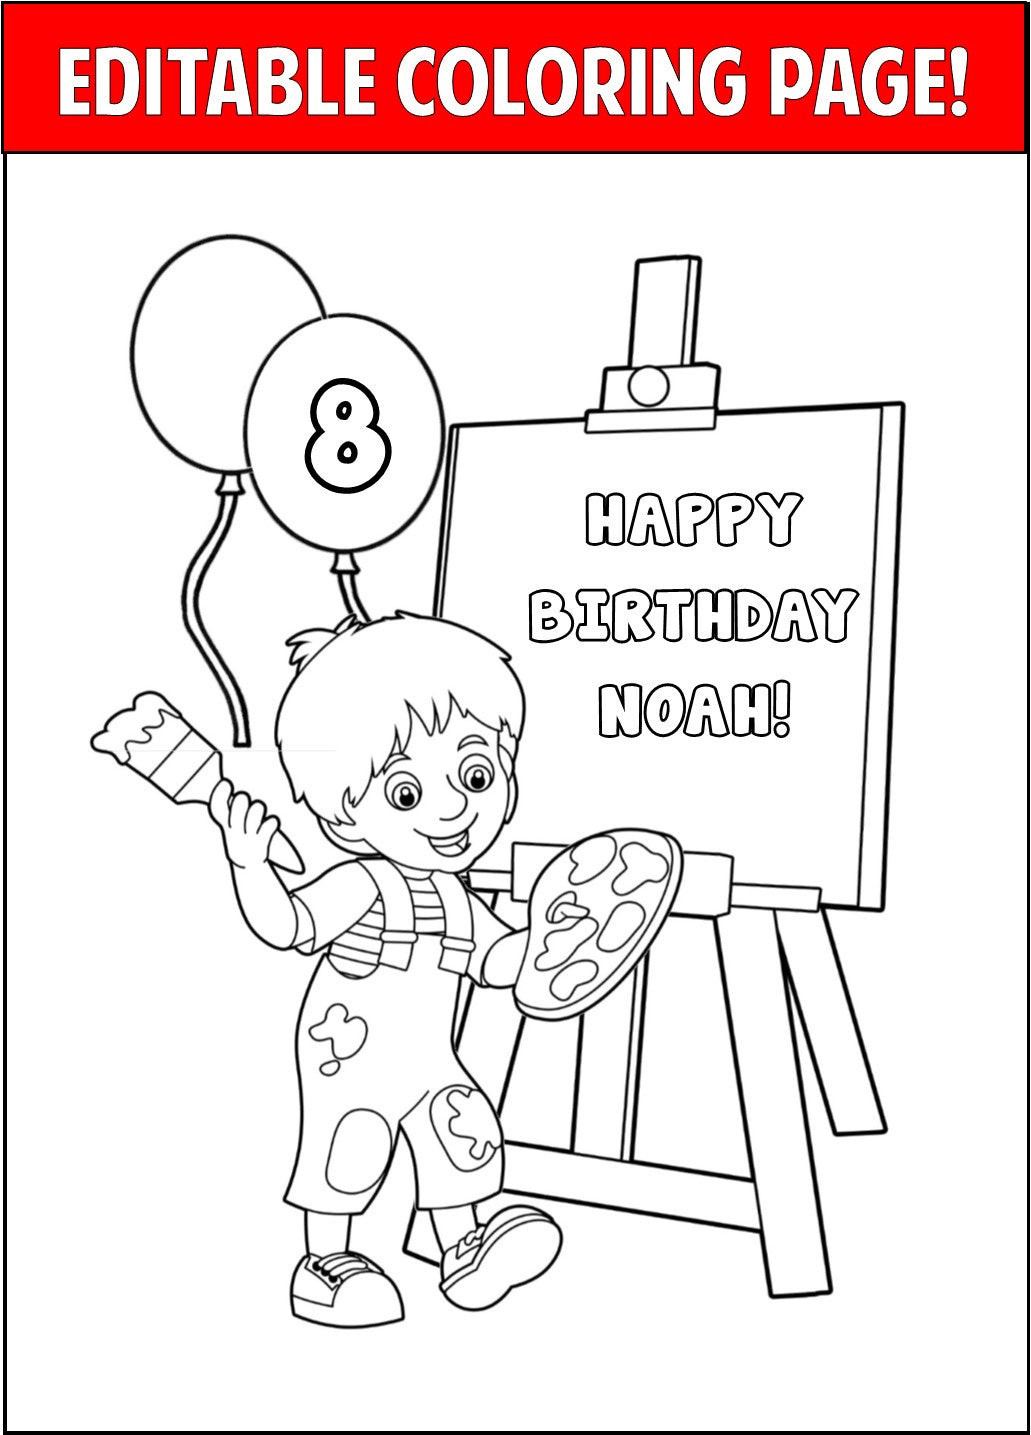 art party personalized coloring page editable